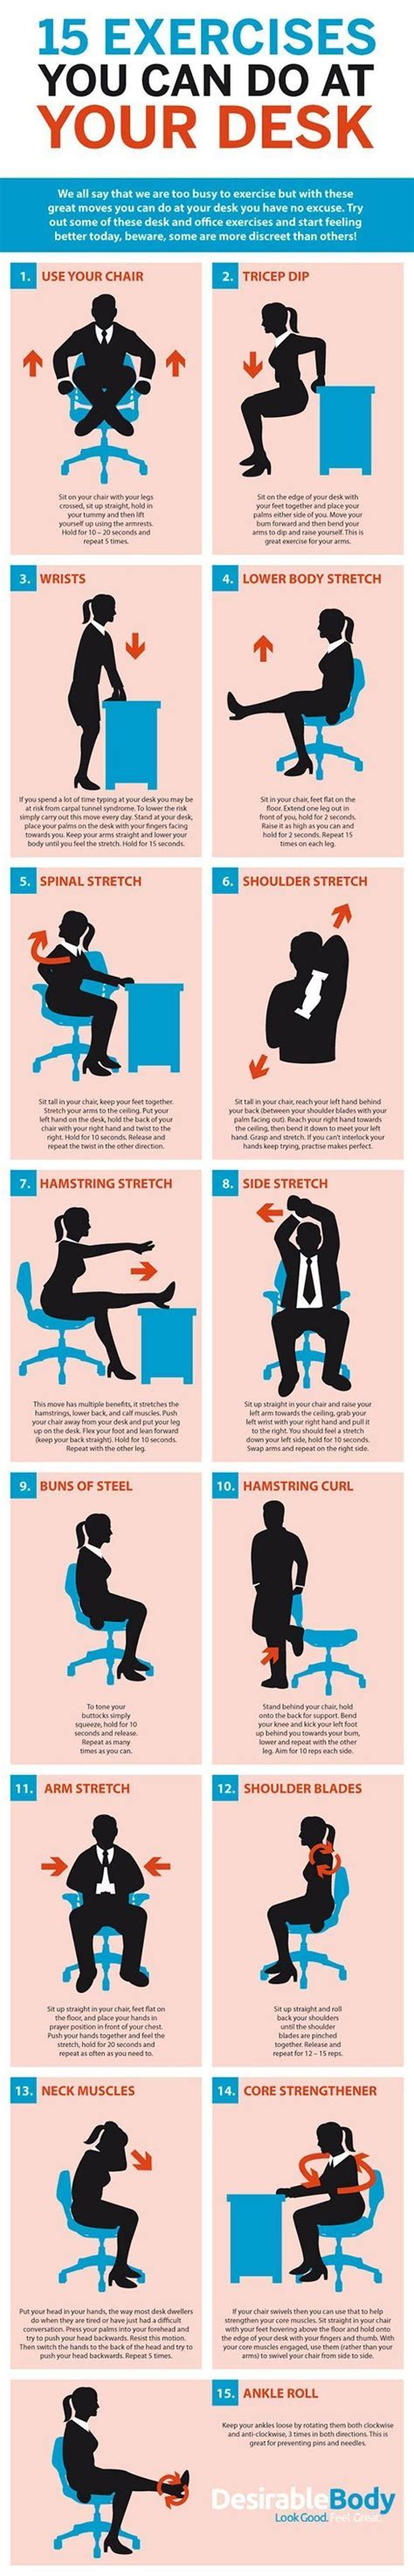 exercises you can do at your desk 15 exercises you can do at your desk exercises workout